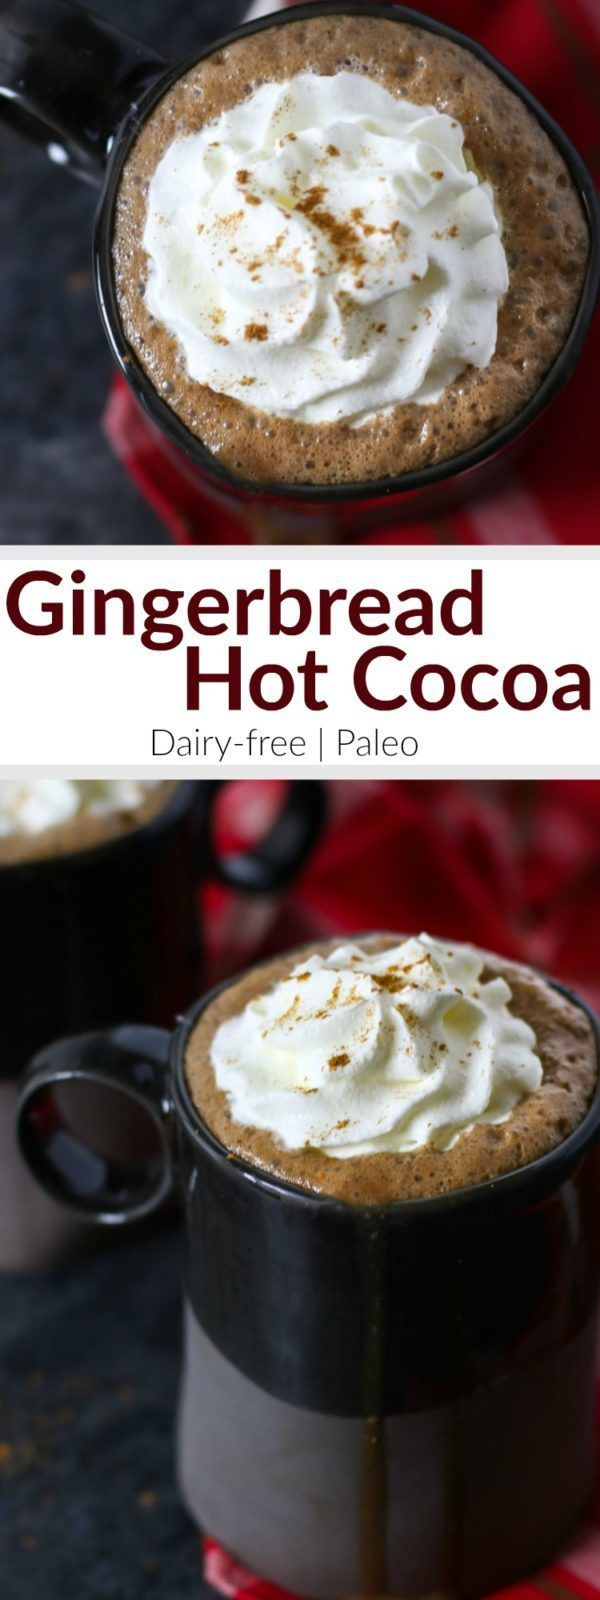 Dairy-free Gingerbread Hot Cocoa | In this Dairy-free Gingerbread Hot Cocoa that's sweetened with honey and molasses and spiced just right you get it all - cookies and cocoa - in one soul-warming mug topped with whipped coconut cream, if you please | Pale